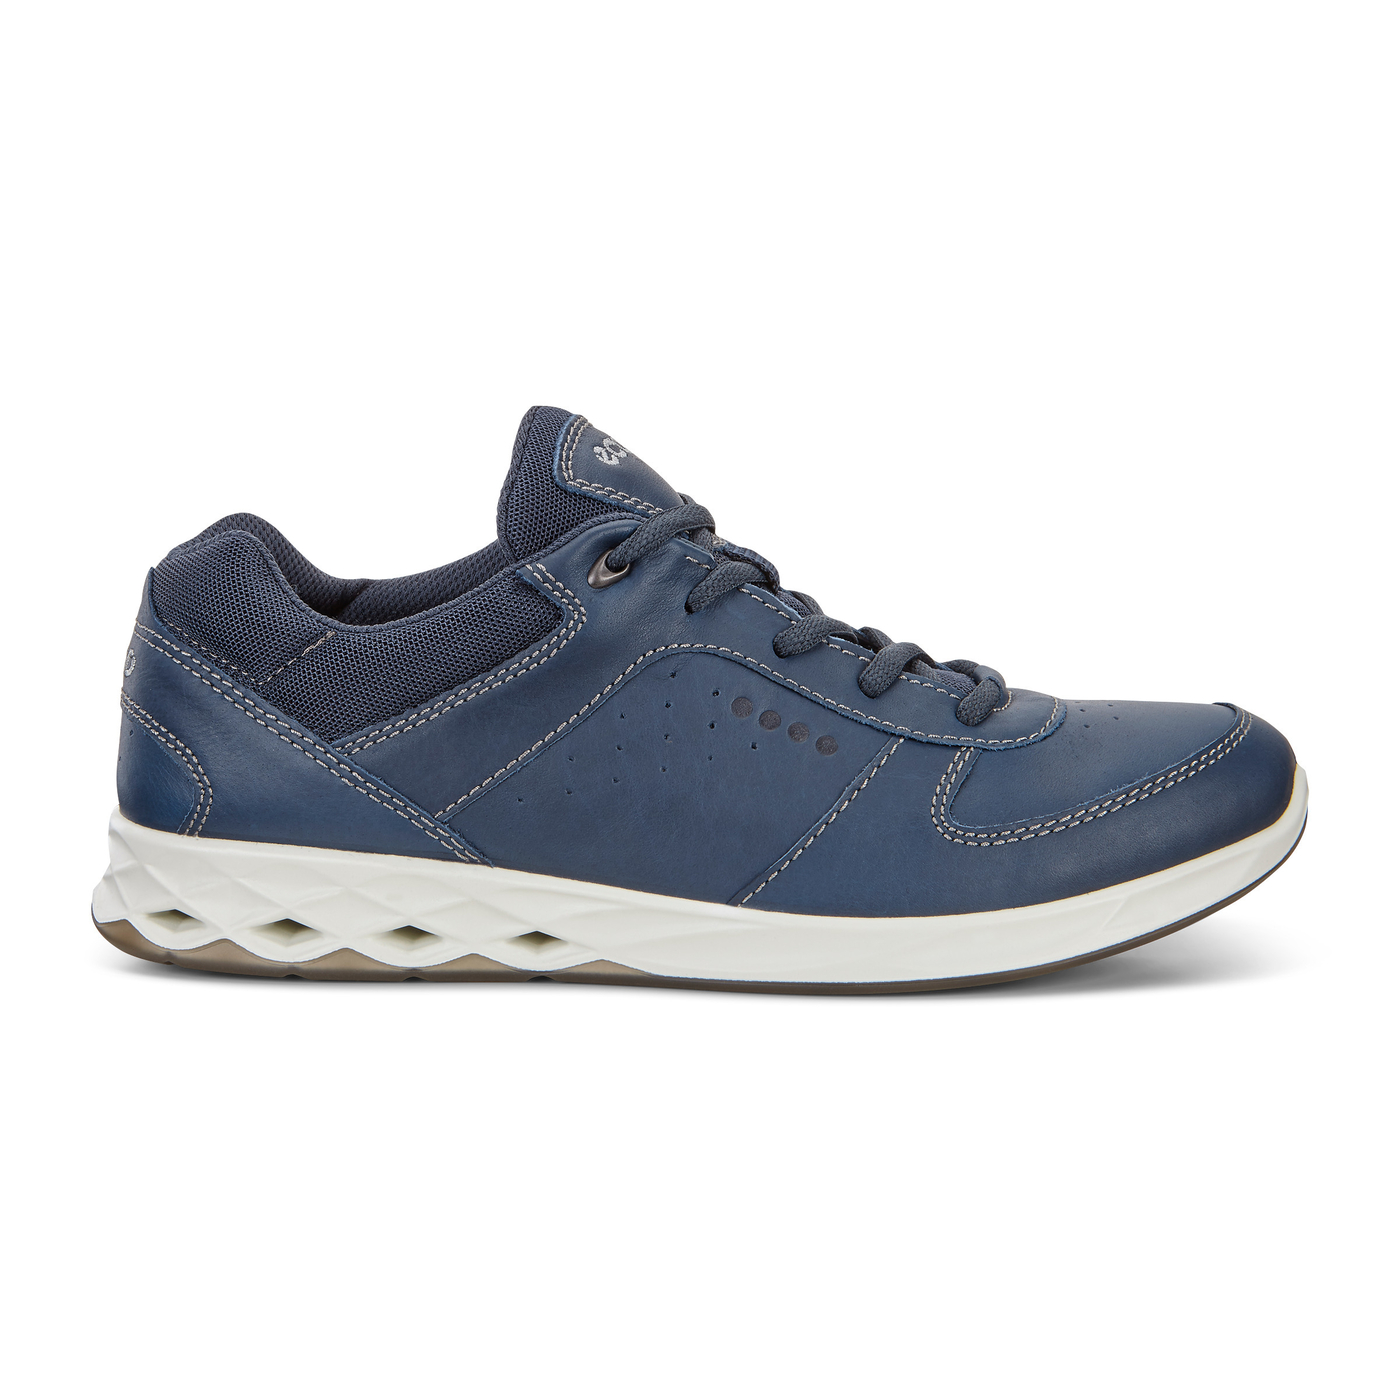 ECCO WAYFLY Mens Outdoor Shoe